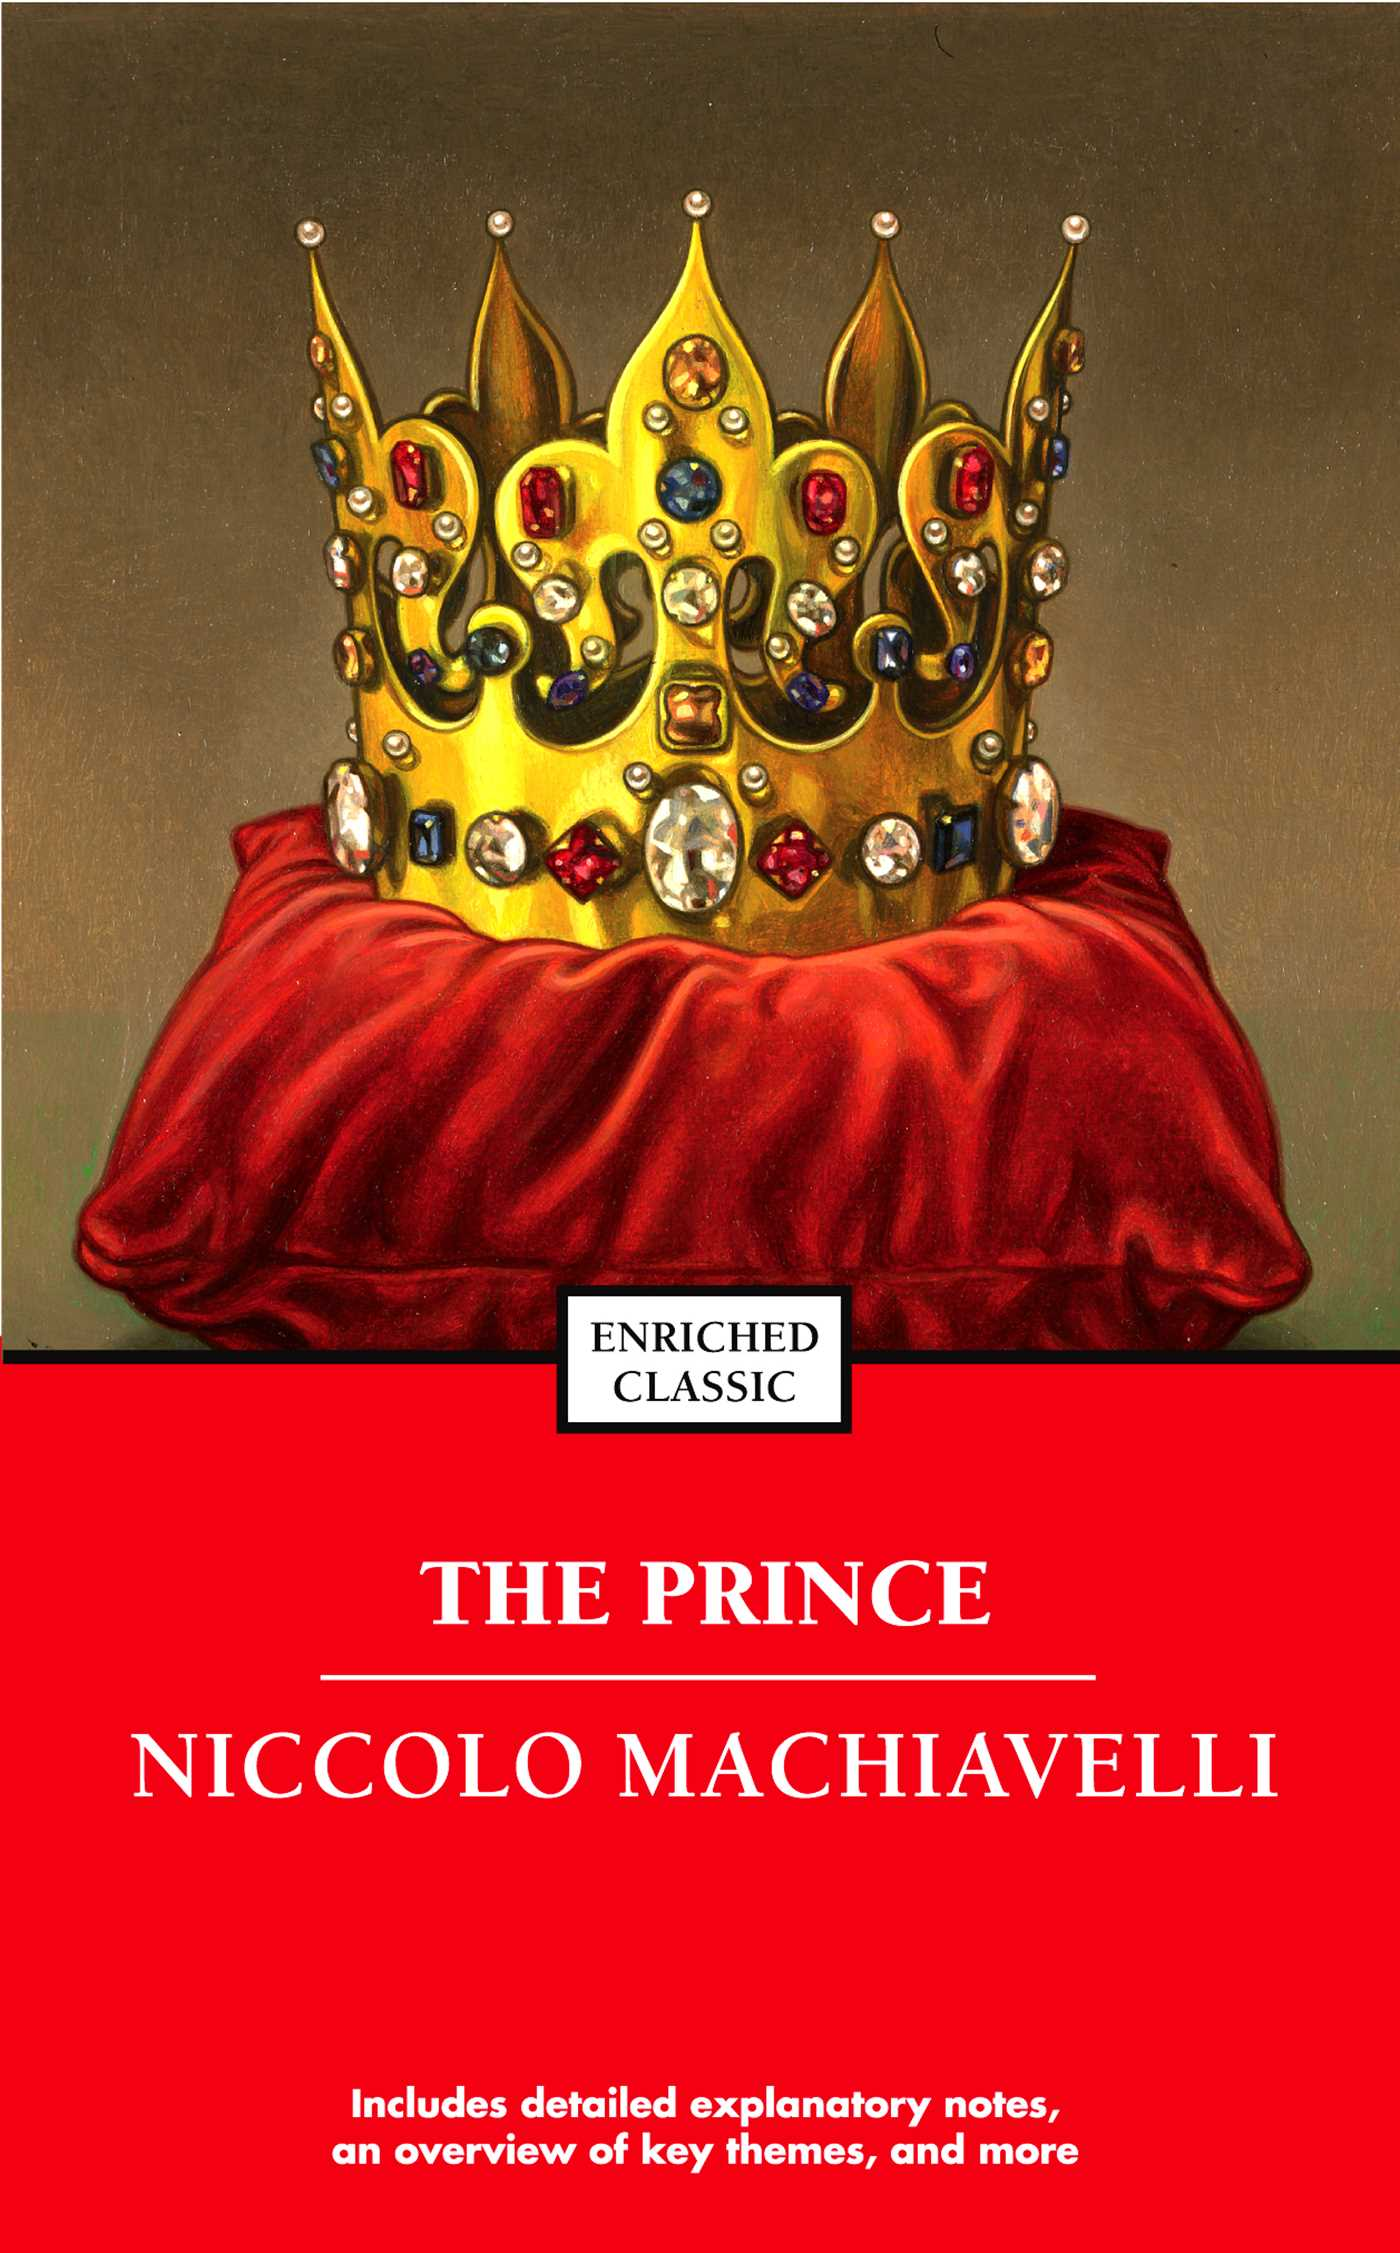 an introduction to the literary analysis of the prince by niccolo machiavelli The prince by niccolo machiavelli: a critical and ethical analysis critical analysis of the prince the prince presents an extended analysis of the principles that privileged members of the society employ to acquire and maintain political power.